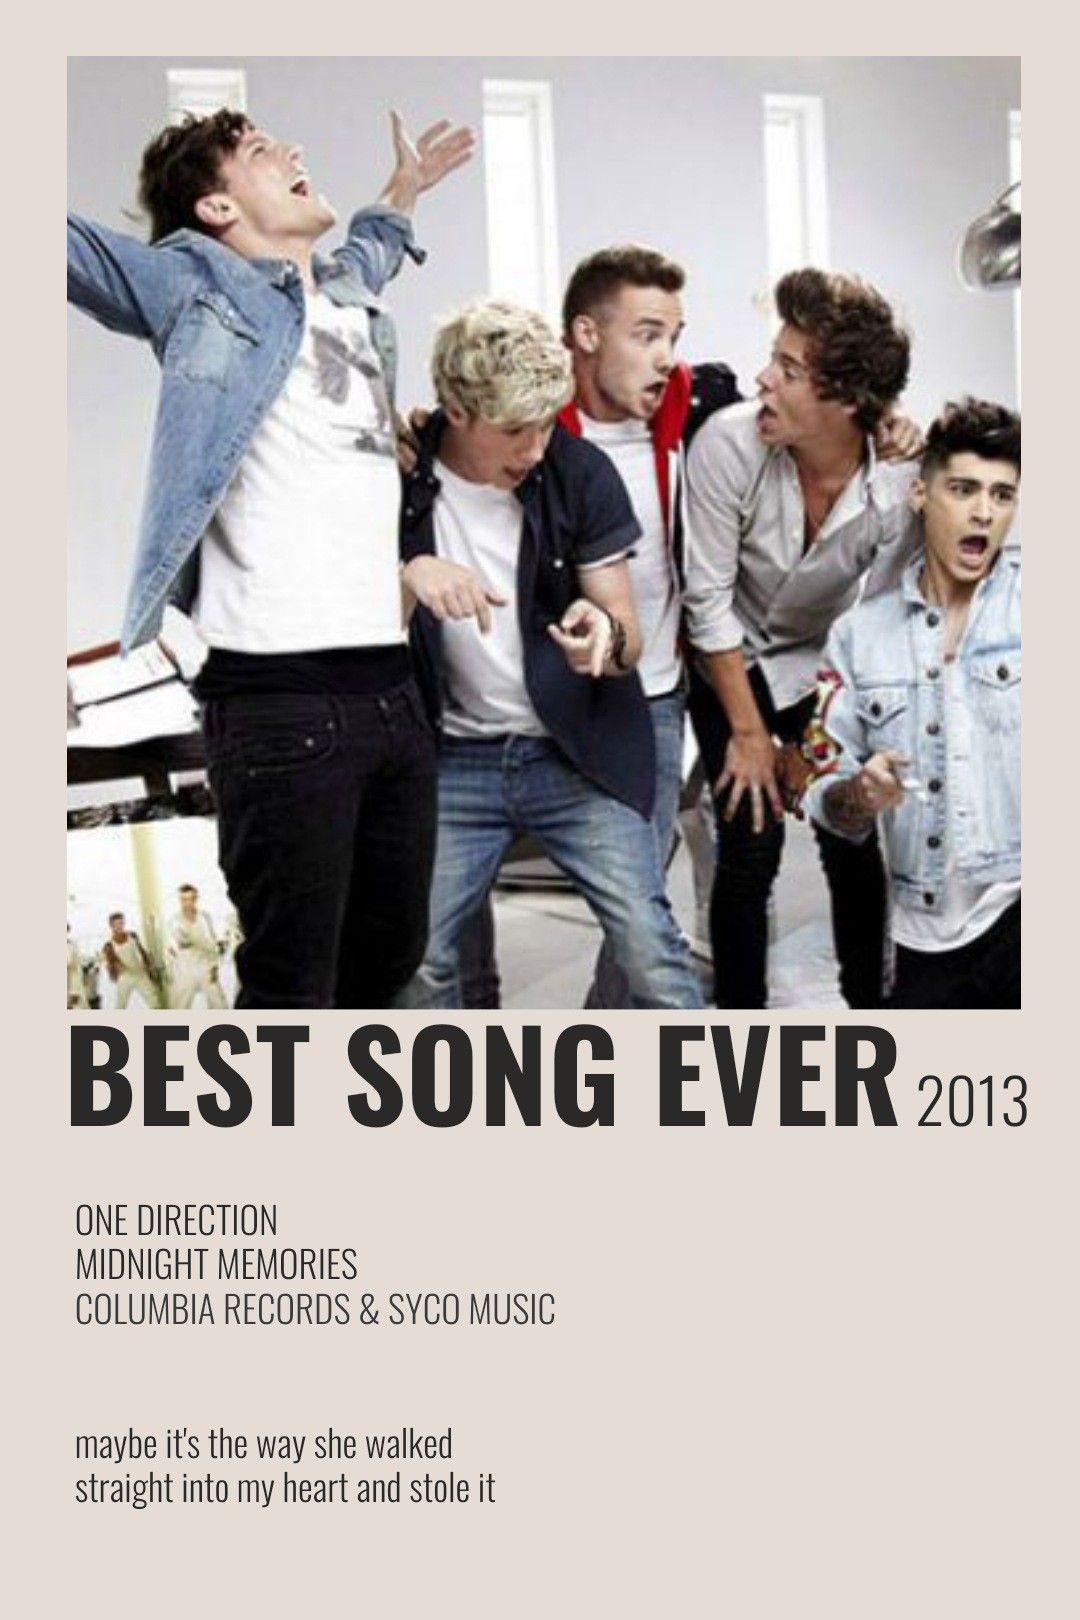 Best Song Ever By One Direction One Direction Posters One Direction Songs Song Posters